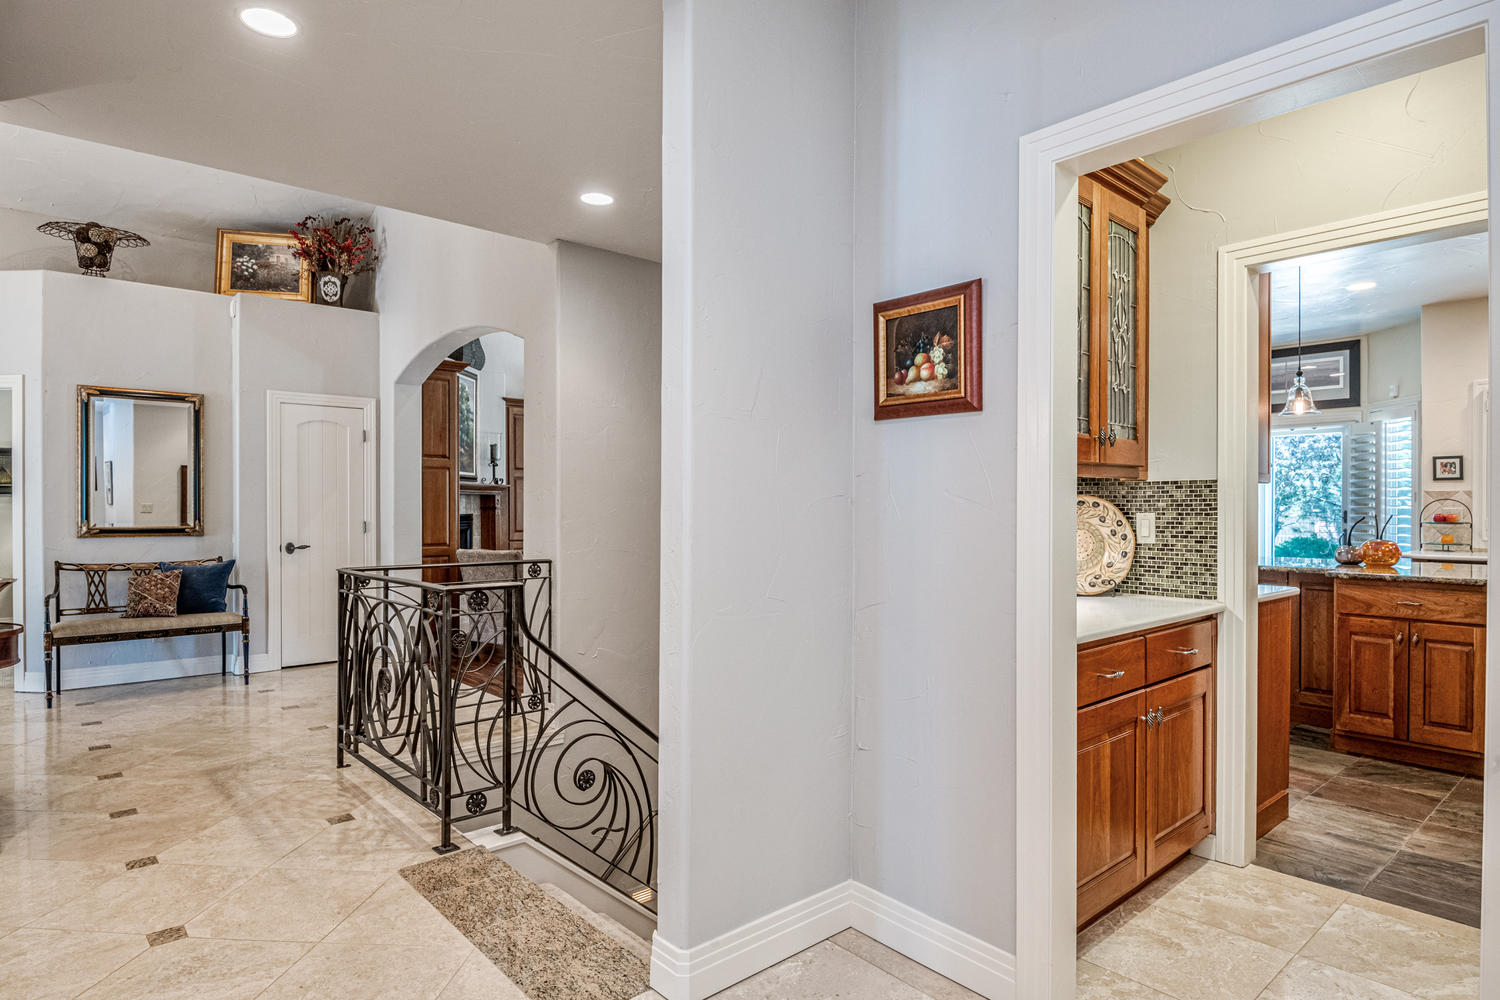 Butlers Pantry & Walk-in Pantry Adjoin Kitchen